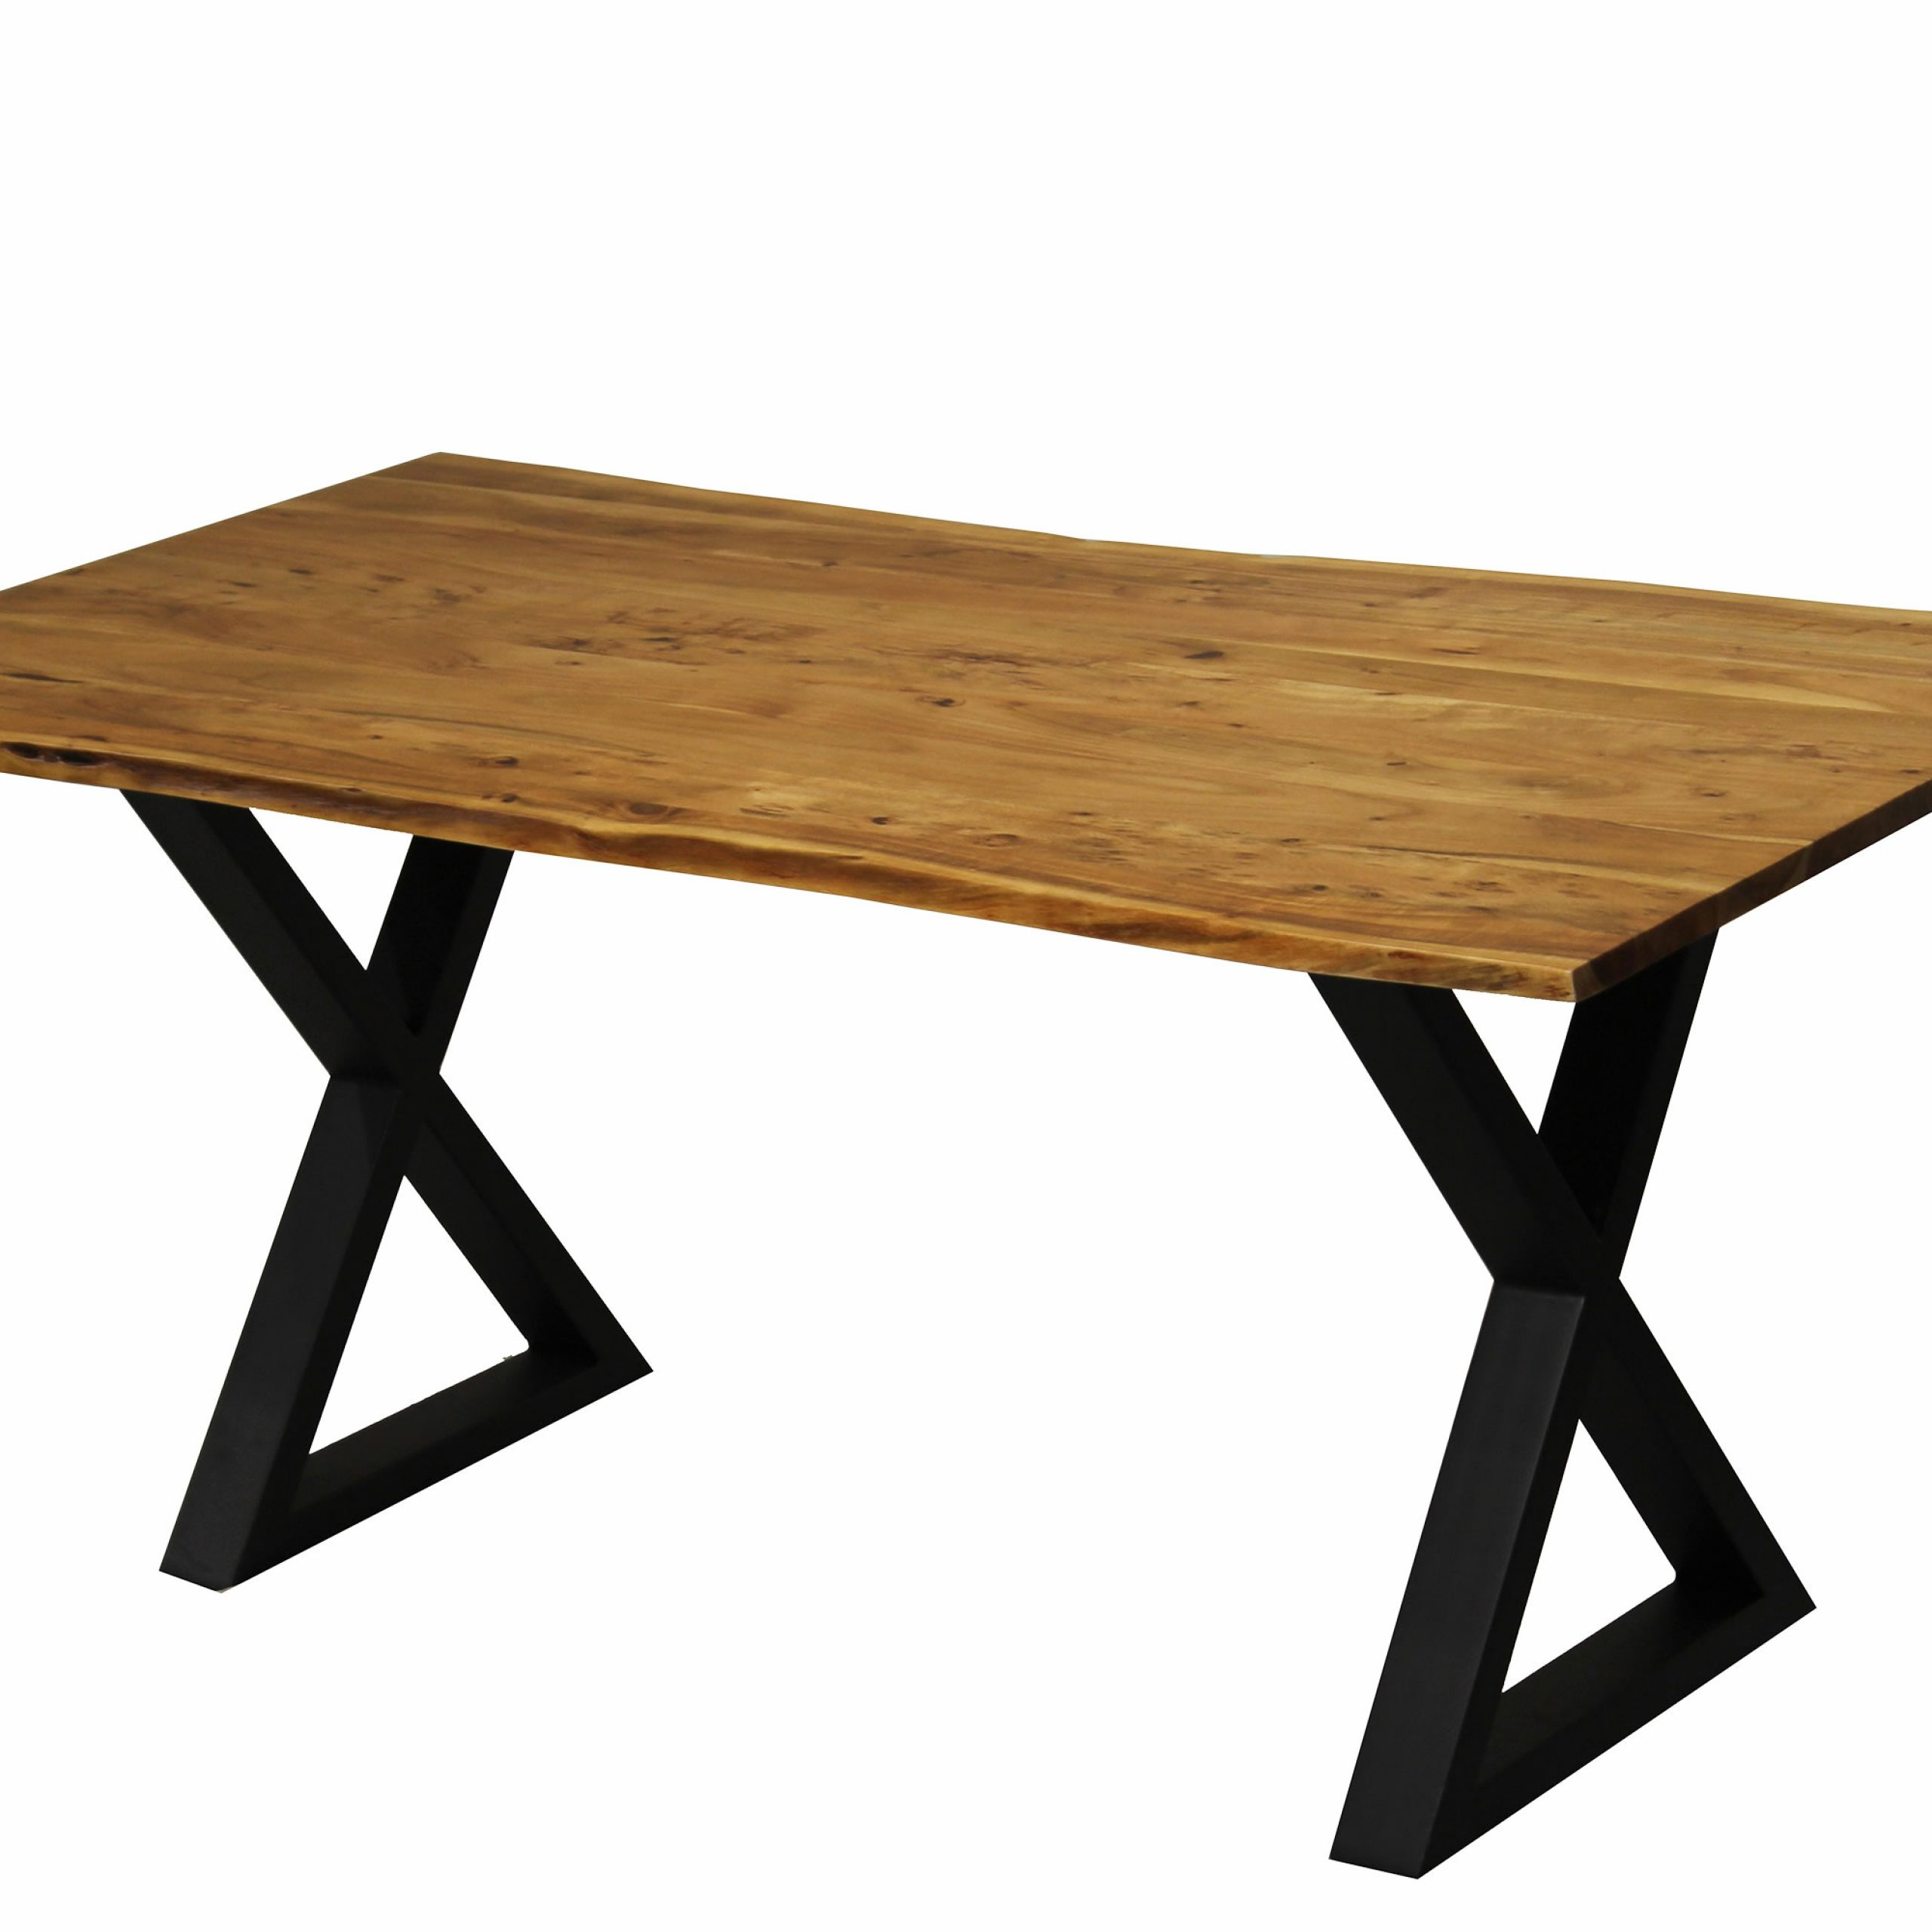 Acacia Dining Tables With Black X Legs For Most Recent Zen Live Edge 67 Inches Dining Table (Acacia – Black X Legs) (View 4 of 25)